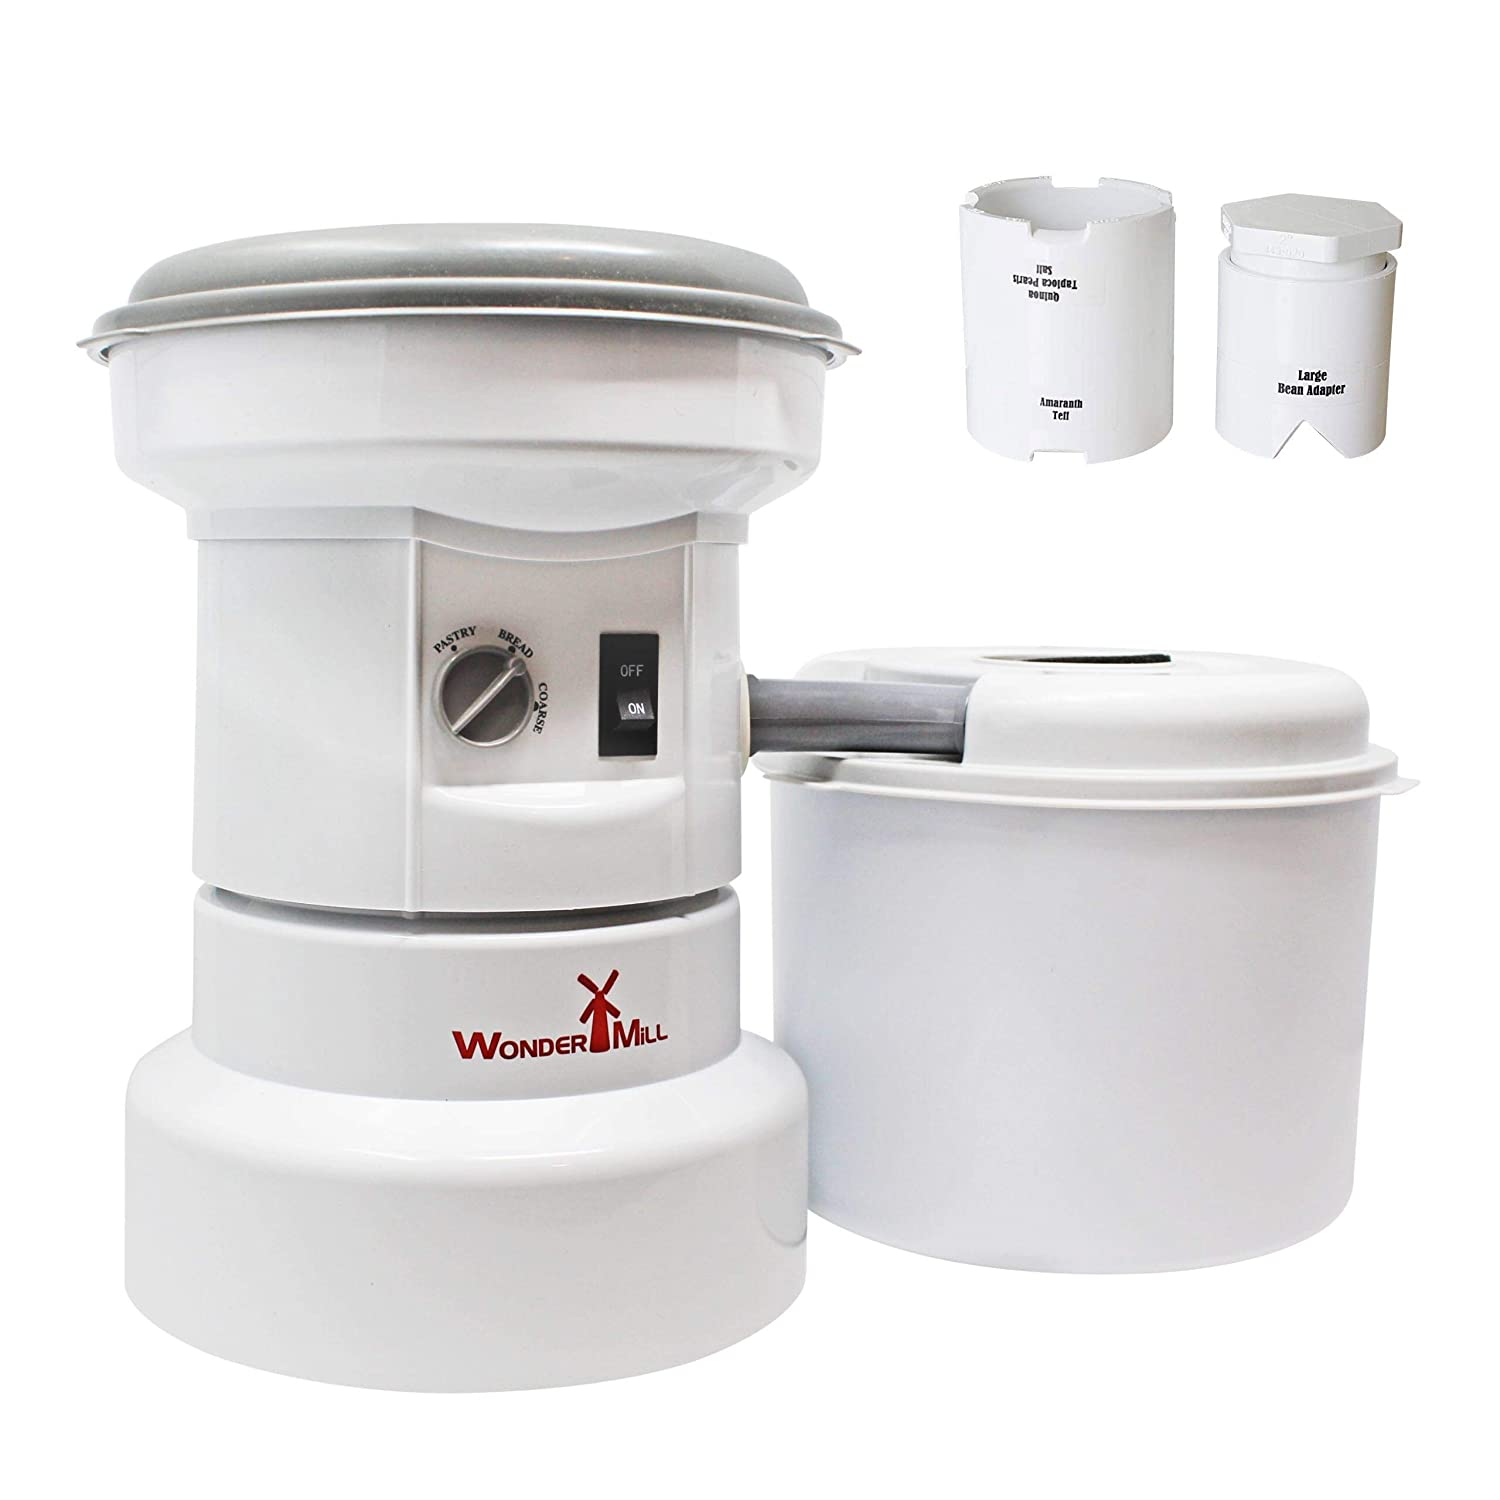 Grain Grinder with Flour Canister, Small Grains Attachment and Large Beans Adapter Combo - Flour Milling Machine for Home and Professional Use - Self-cleaning Electric Grain Mill Grinder by WonderMill